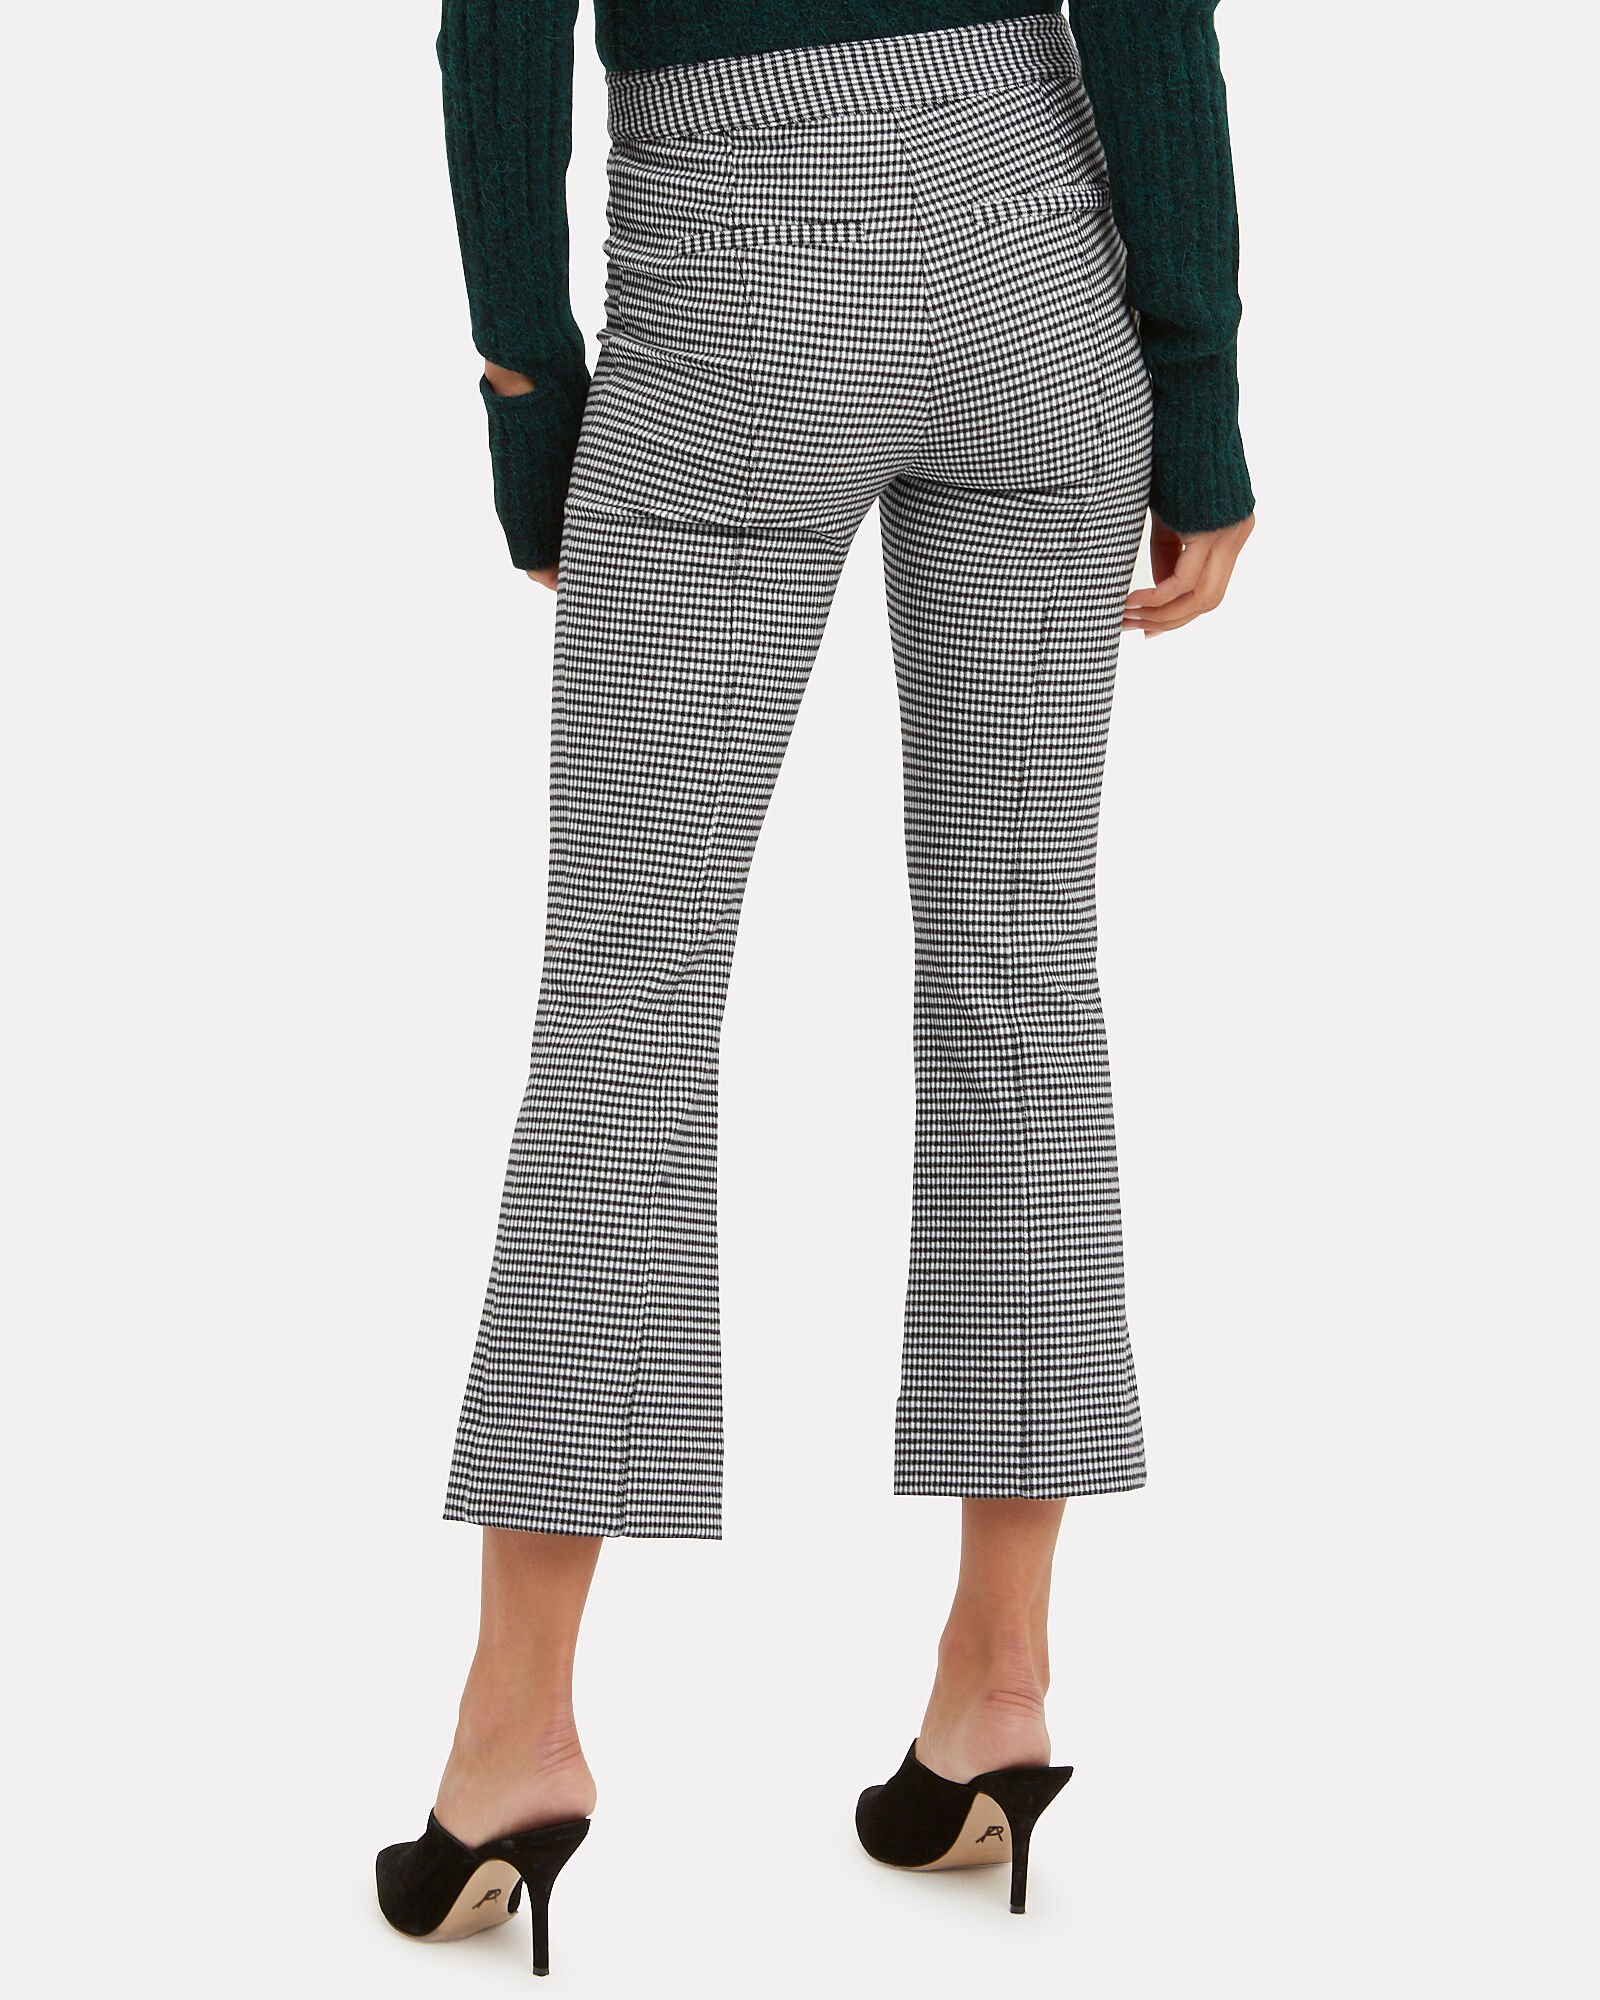 Houndstooth Cropped Flare Trousers, BLK/WHT, hi-res